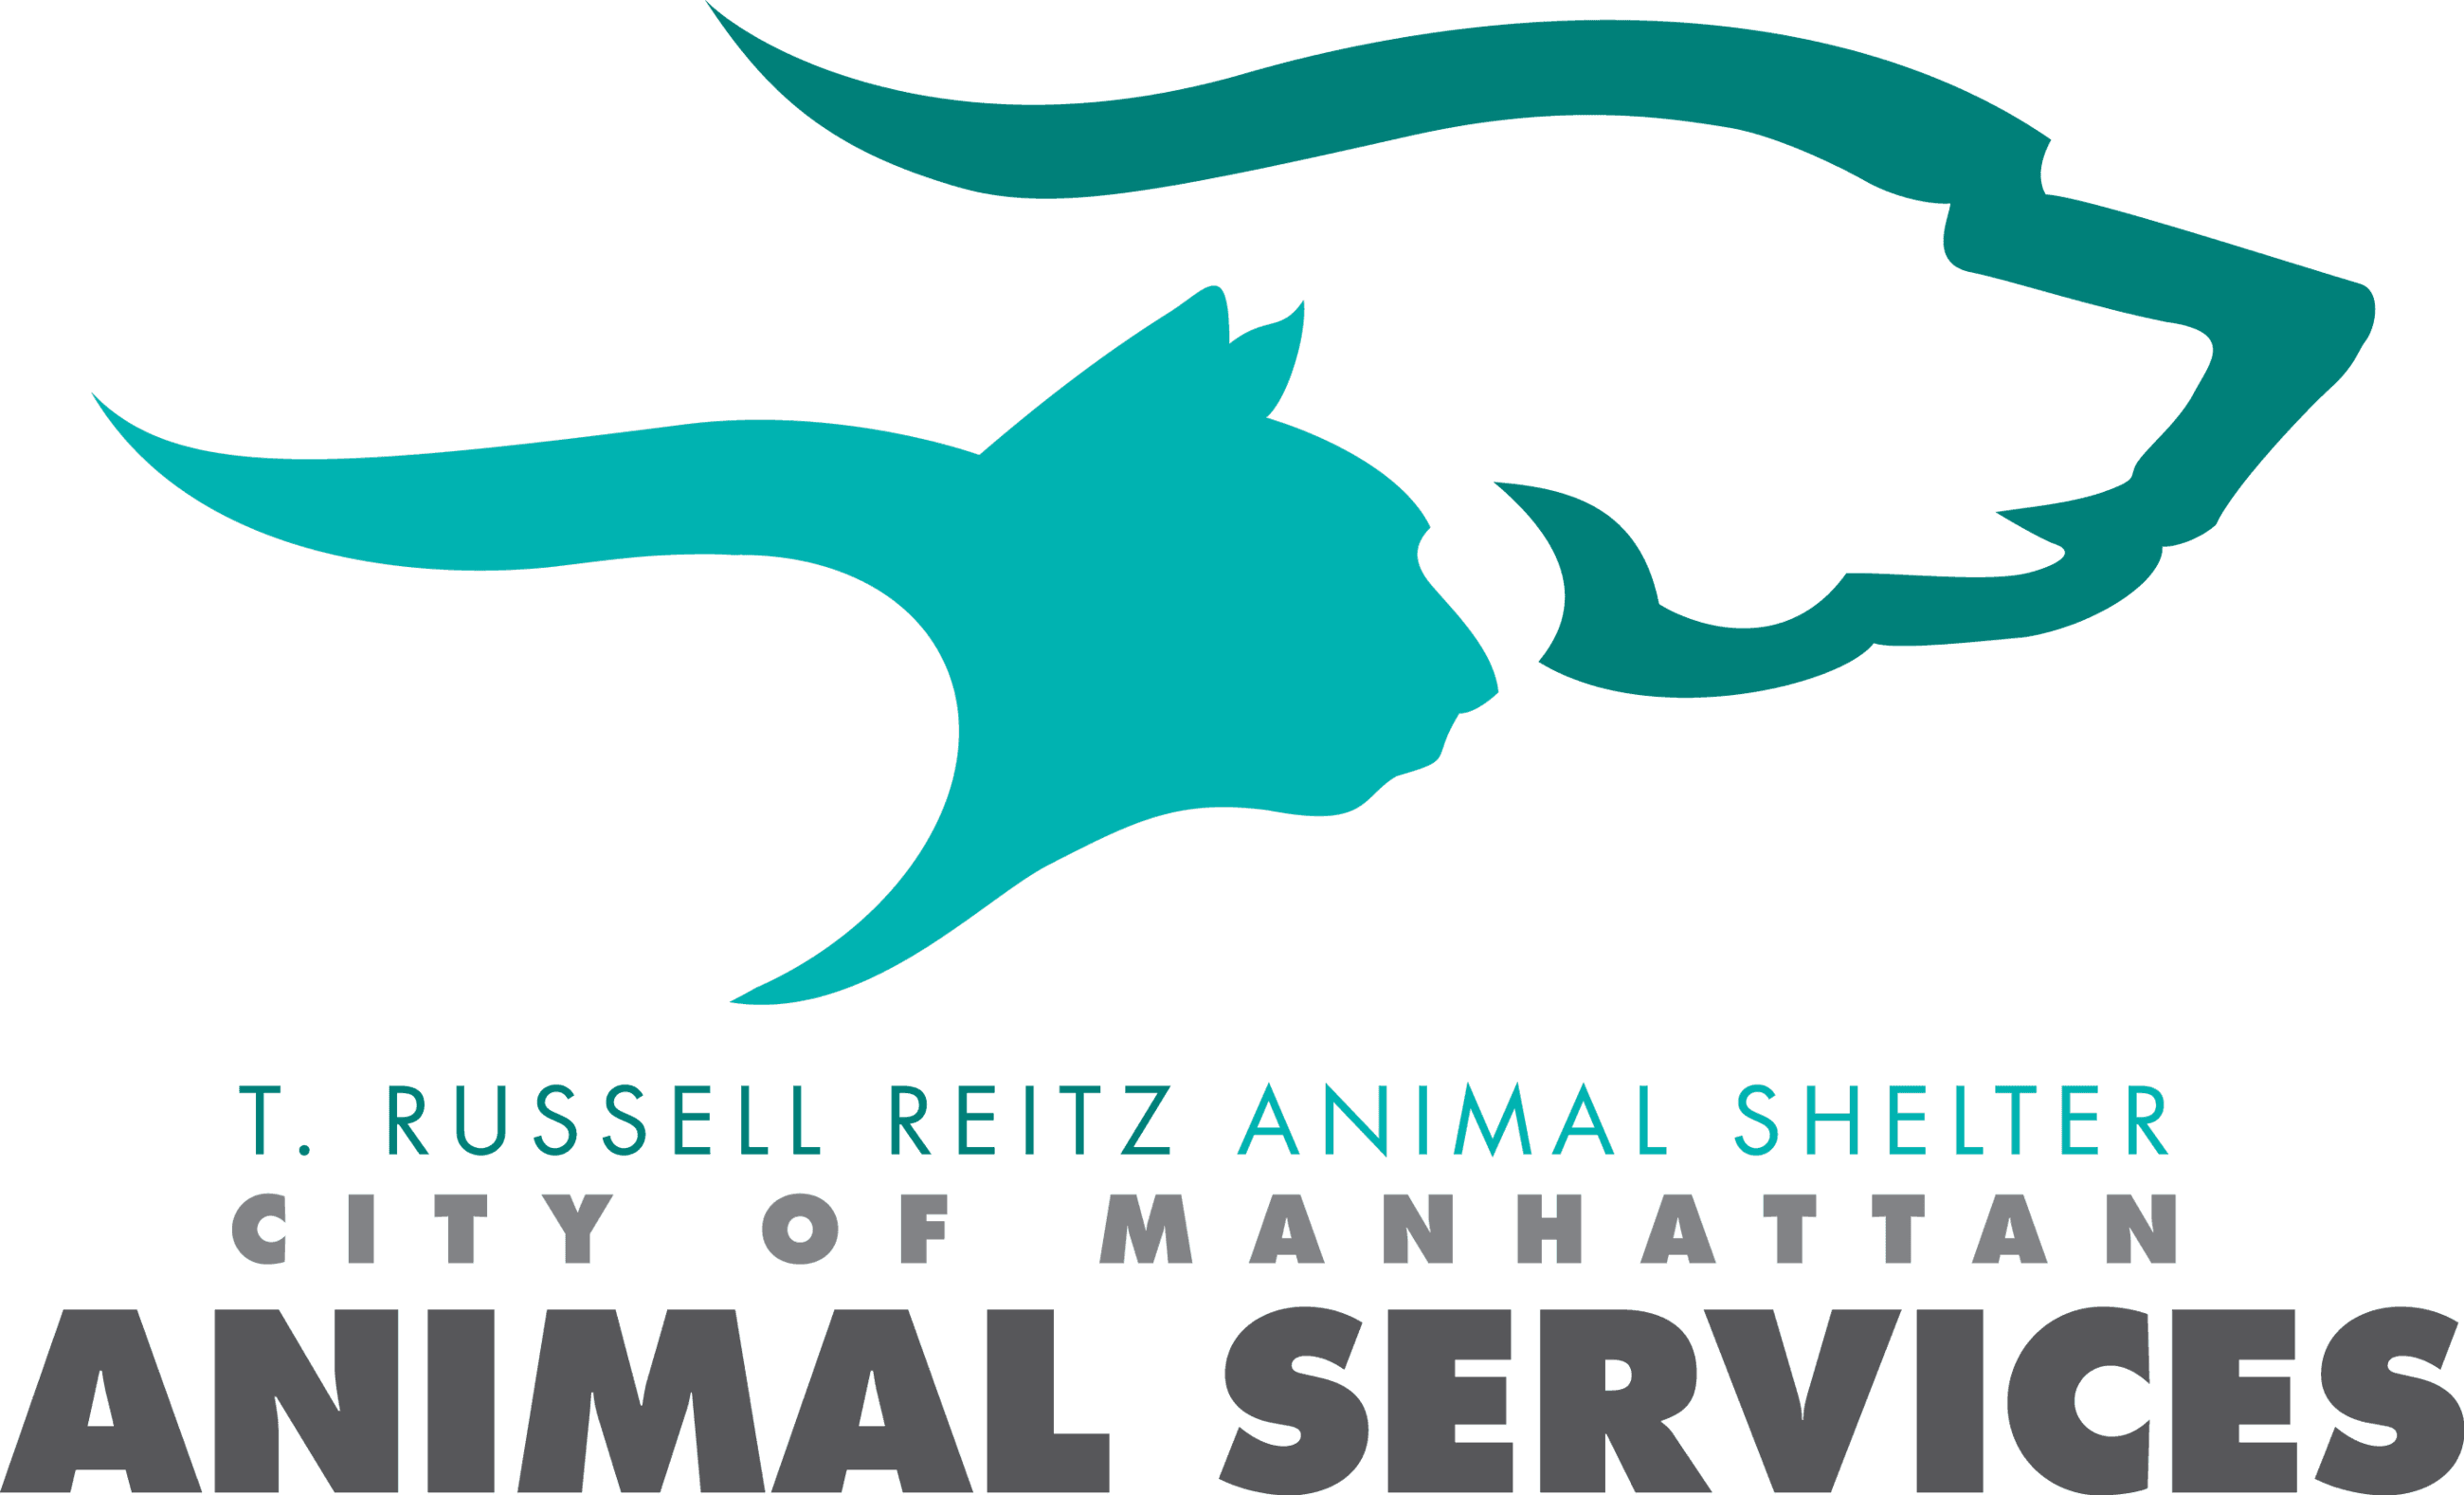 2015updated animal services logo